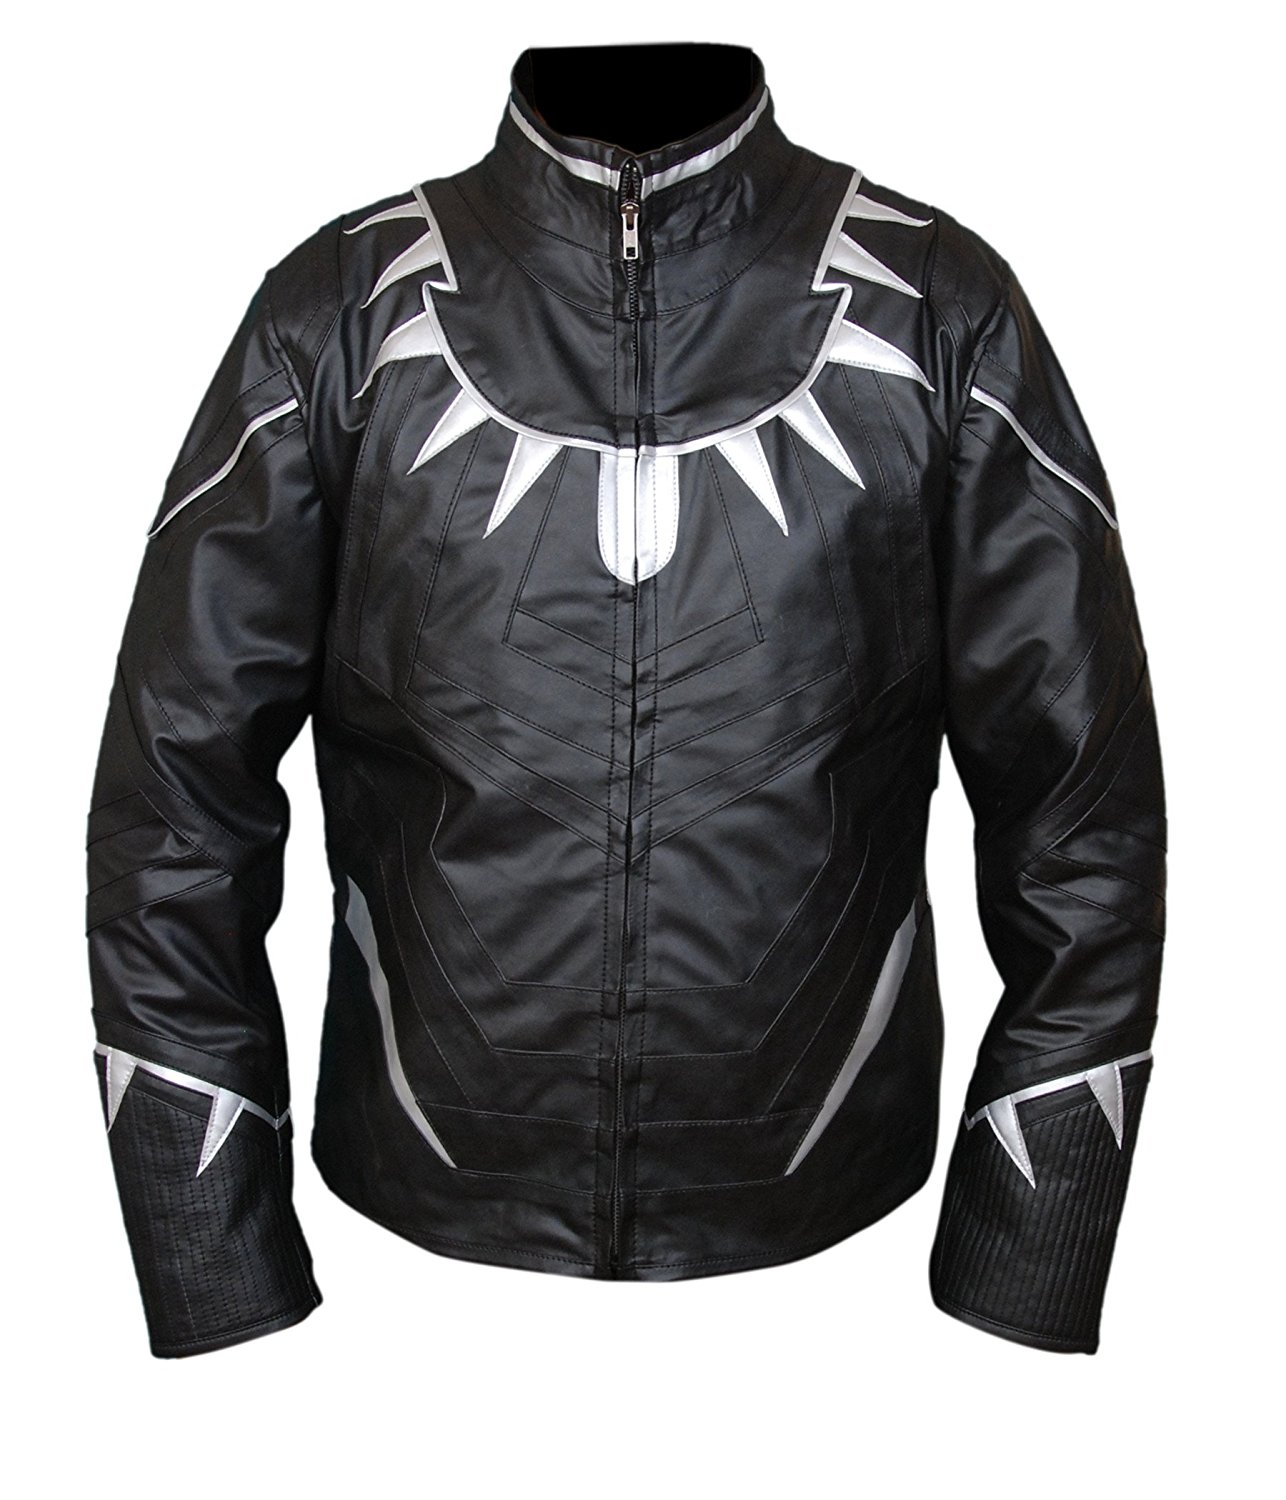 captain-america-civil-war-movie-black-panther-leather-jacket-3